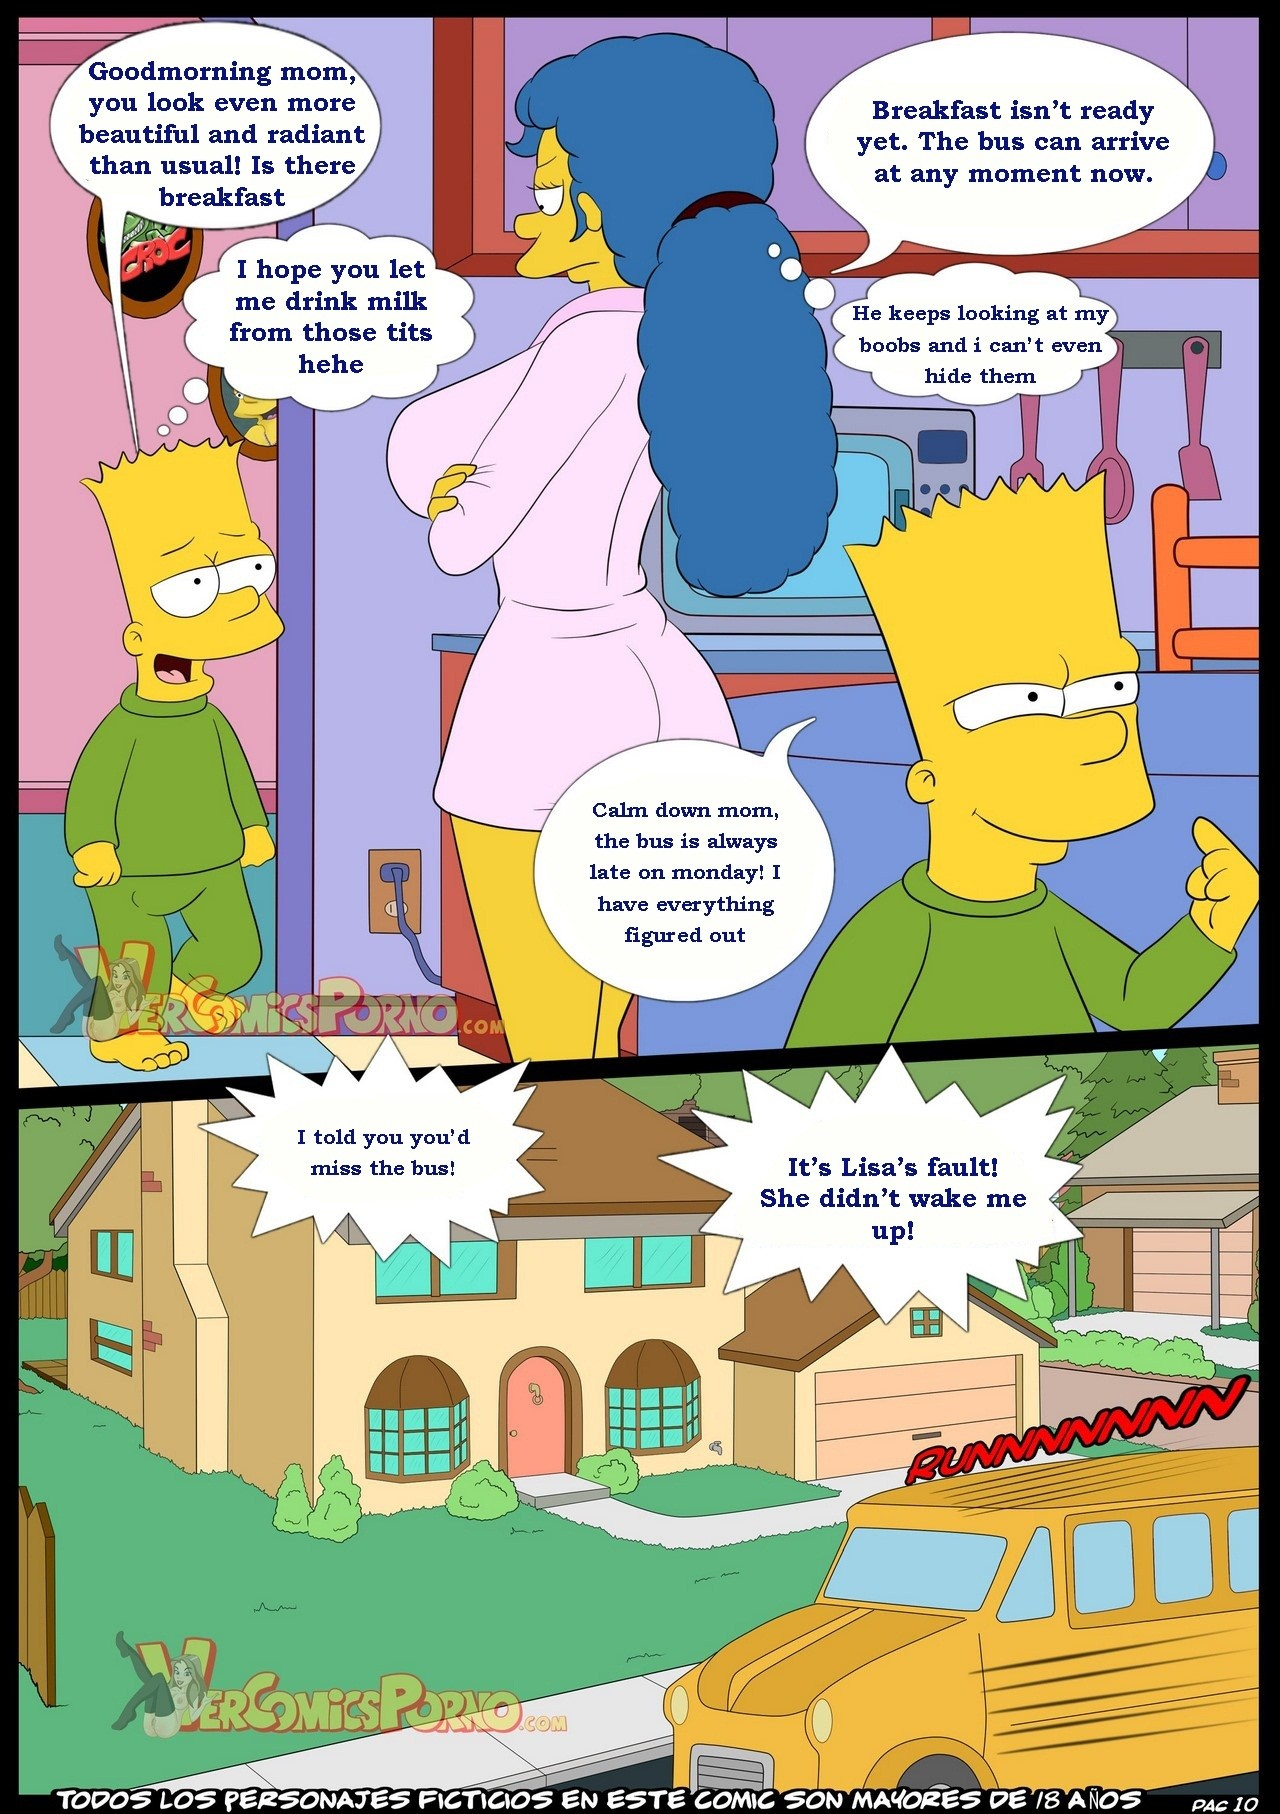 11 35 - The Simpsons. Part 3.